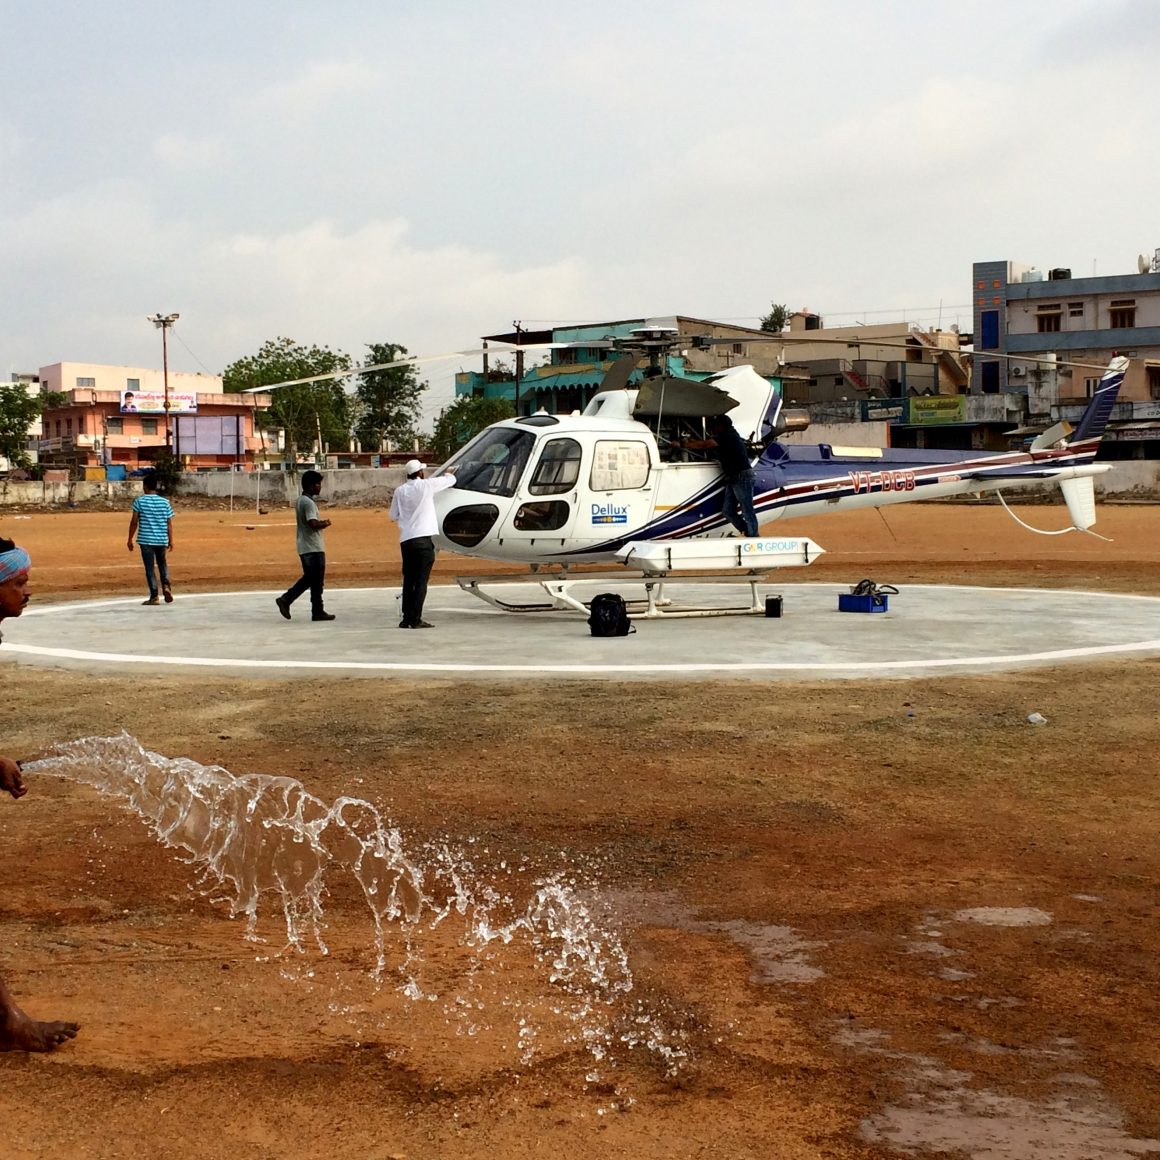 watering heli pad before take off